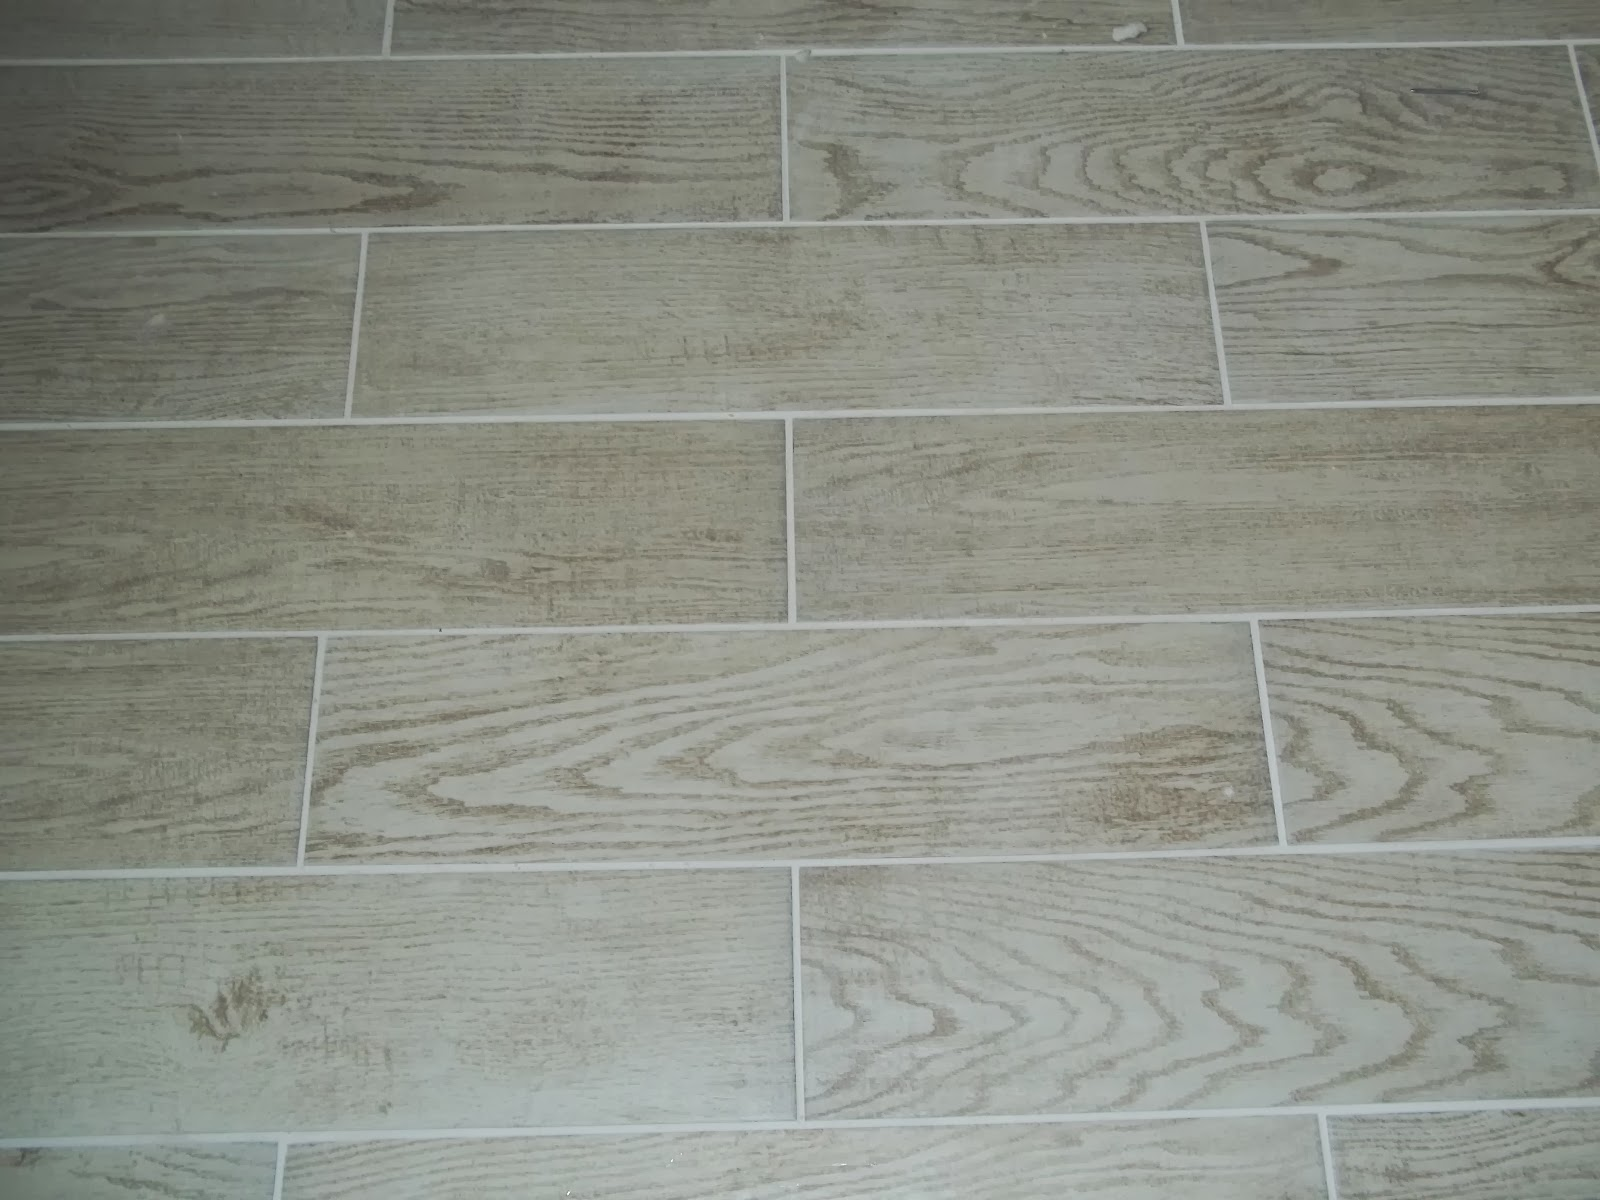 Tile installtion faq sanded grout or un sanded grout ask tile broke joint floor tile with a 316 grout joint with sanded grout dailygadgetfo Choice Image